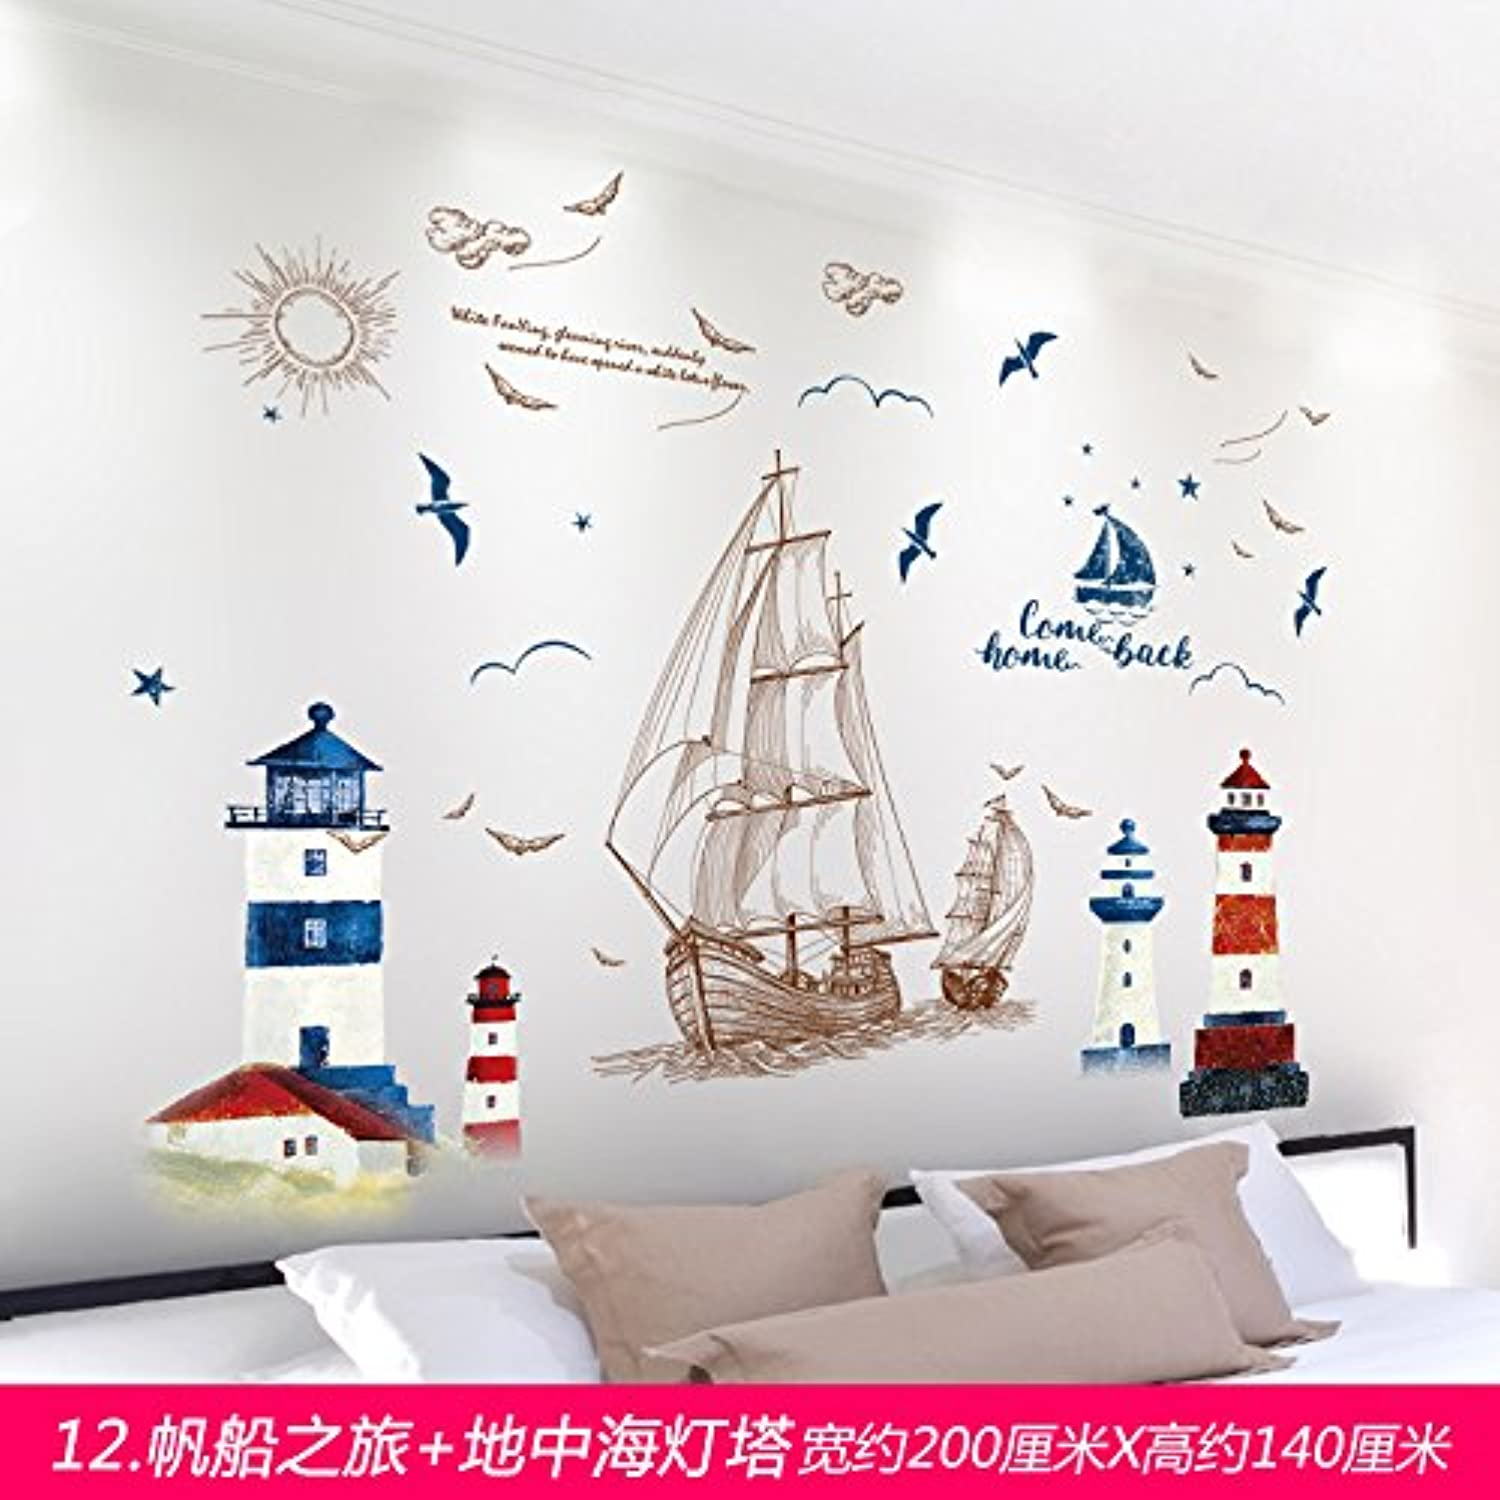 Znzbzt 3D Wall Mount Pleasant Creative Wall Sticker Art Bedroom Wallpaper self Adhesive Wall Decor Wall Decals, Sailing